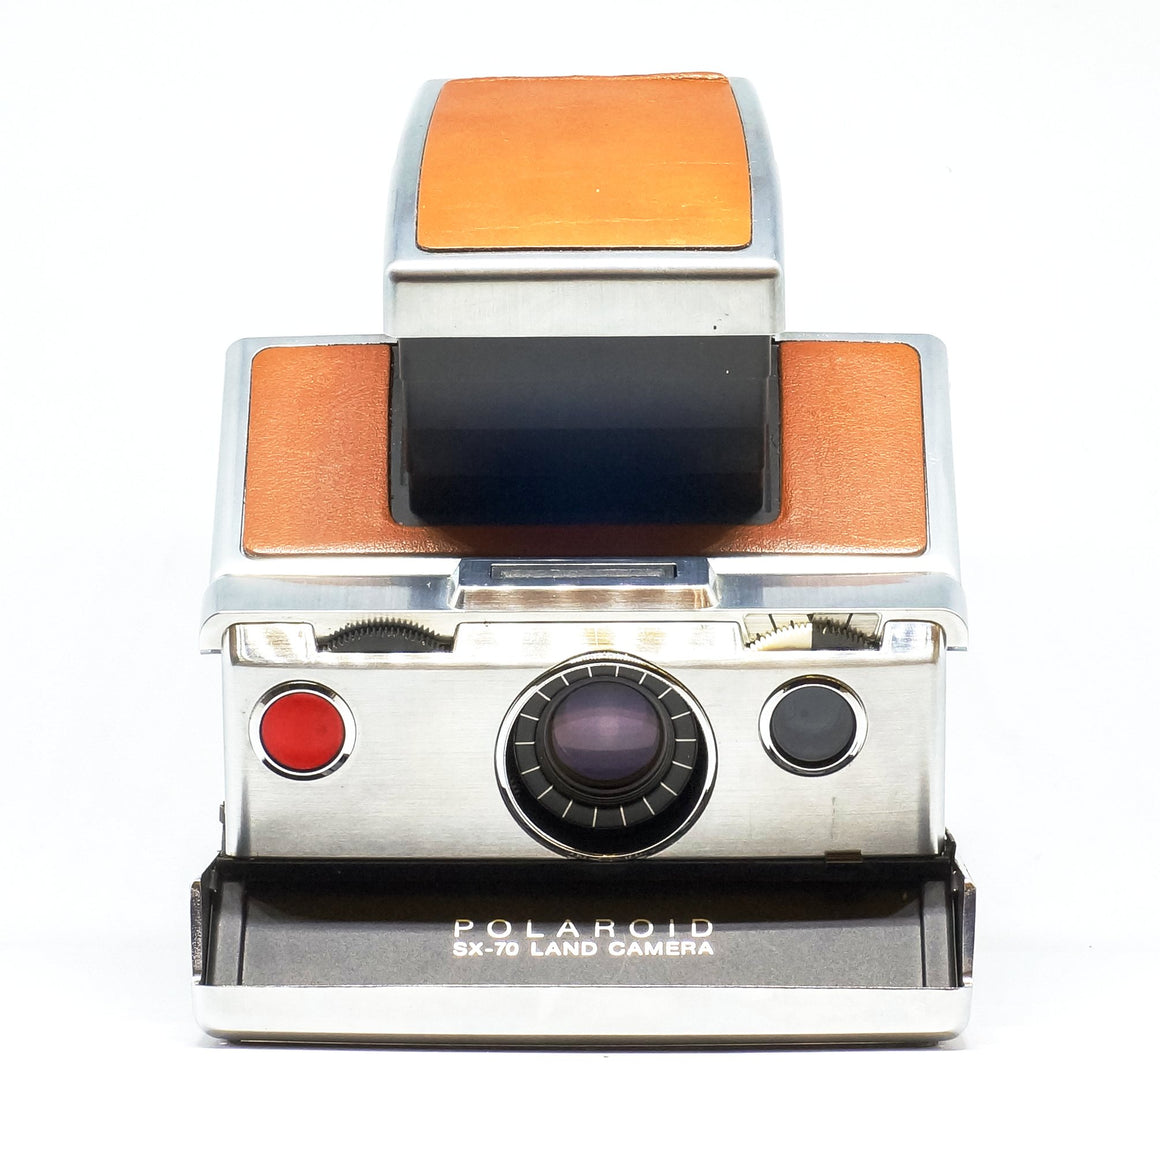 Polaroid SX-70 Land Instant SLR camera